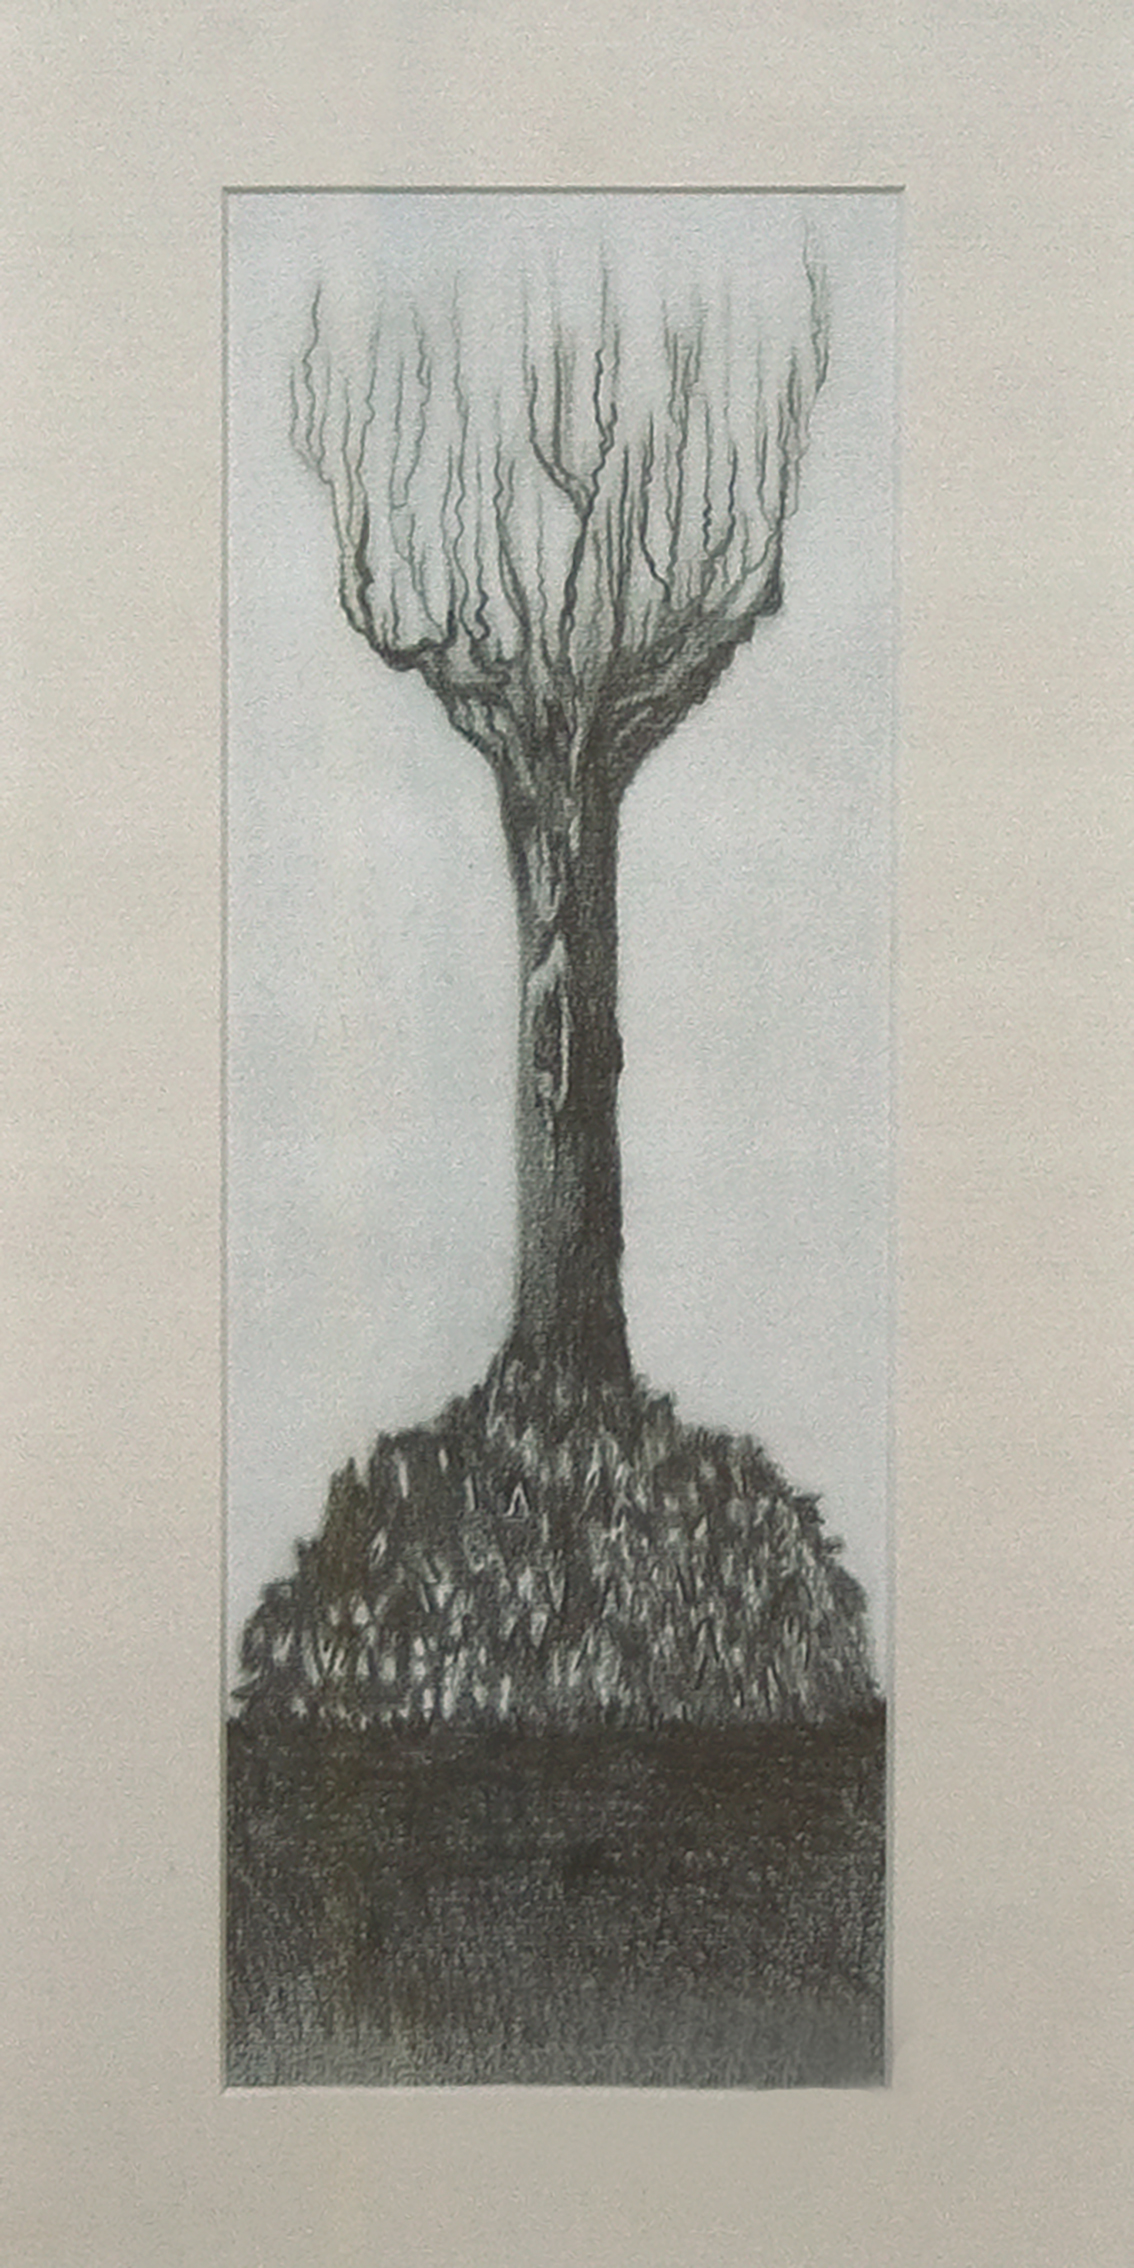 Uprooted 1 - Graphite on paper